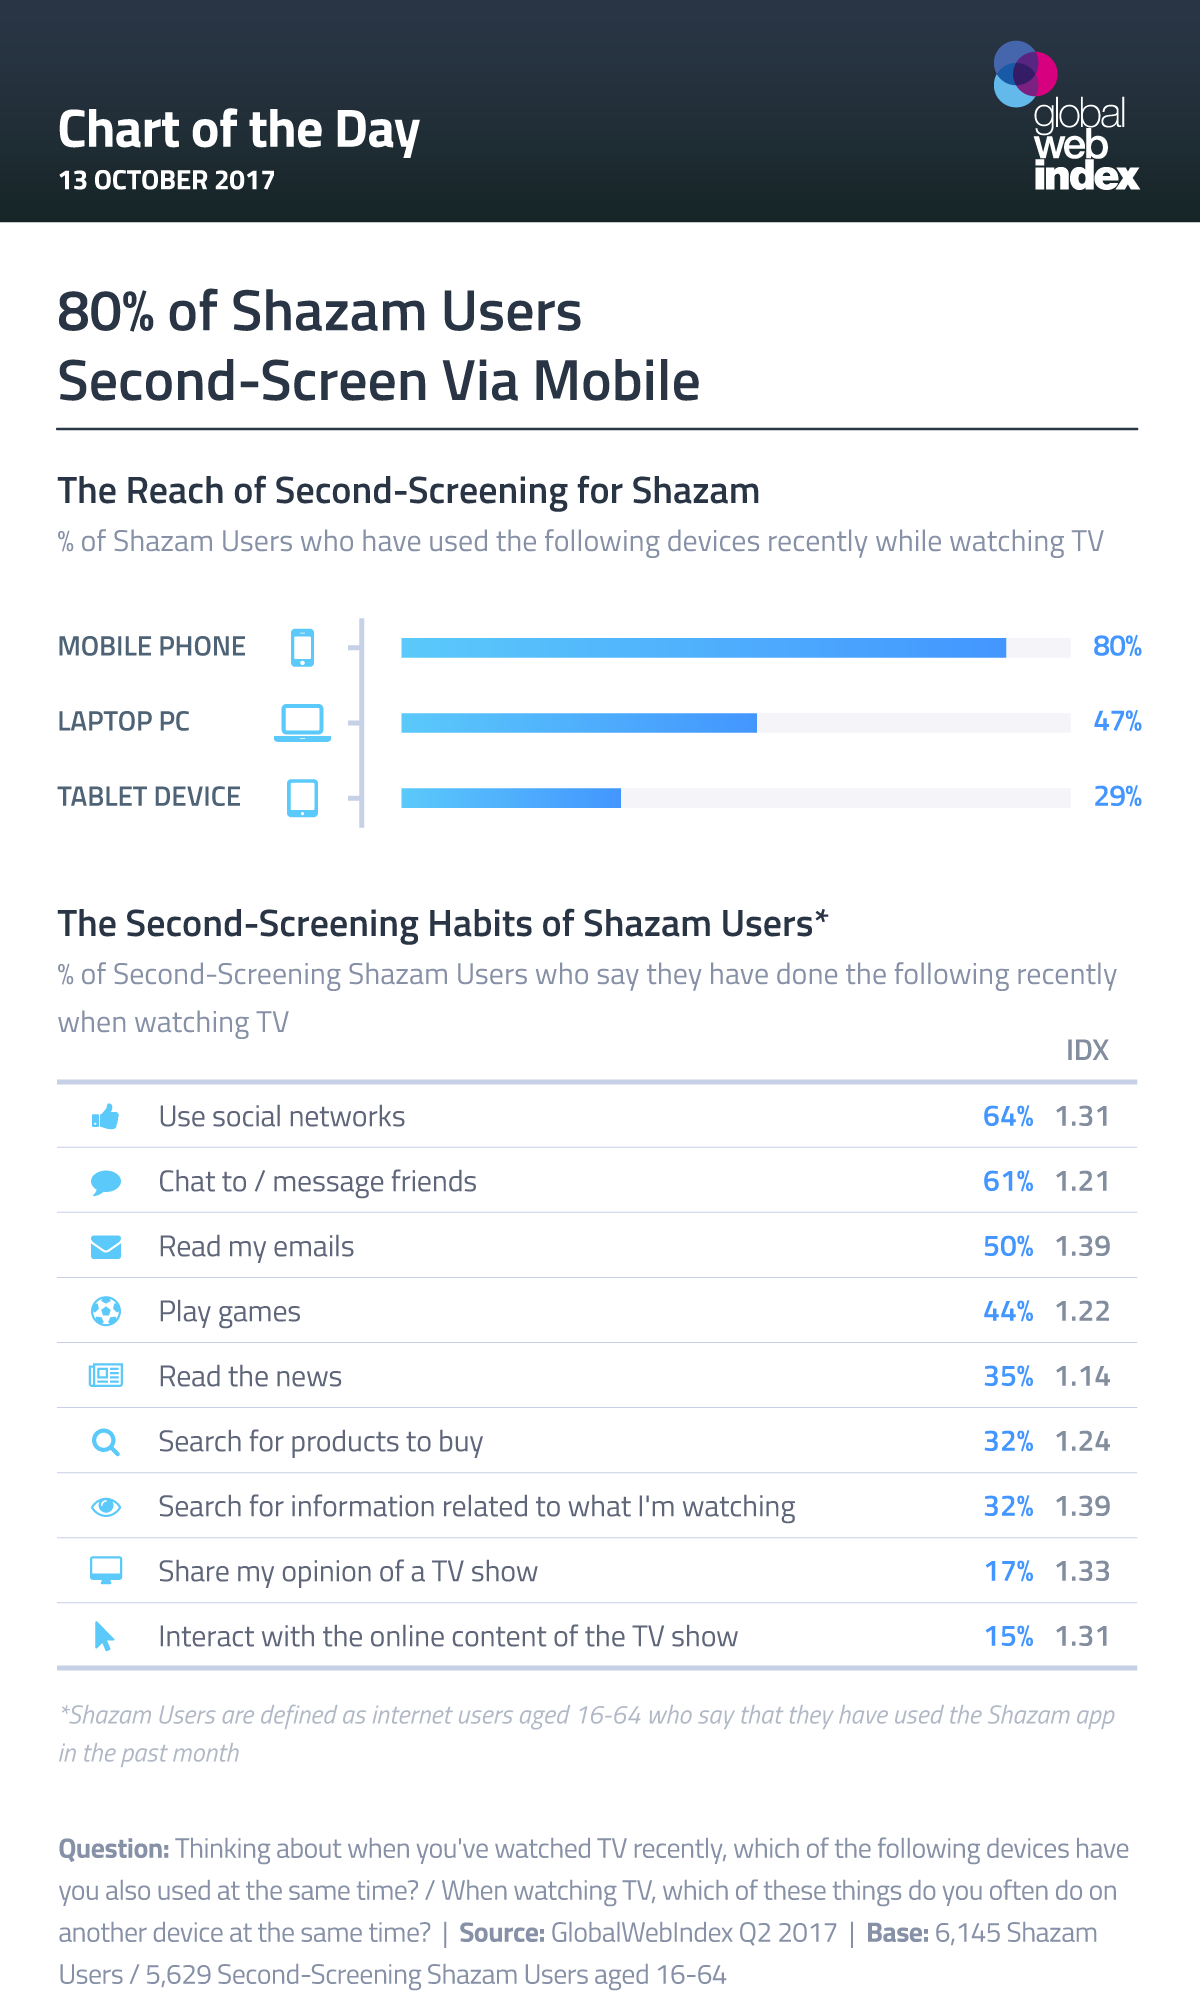 80% of Shazam Users Second-Screen Via Mobile